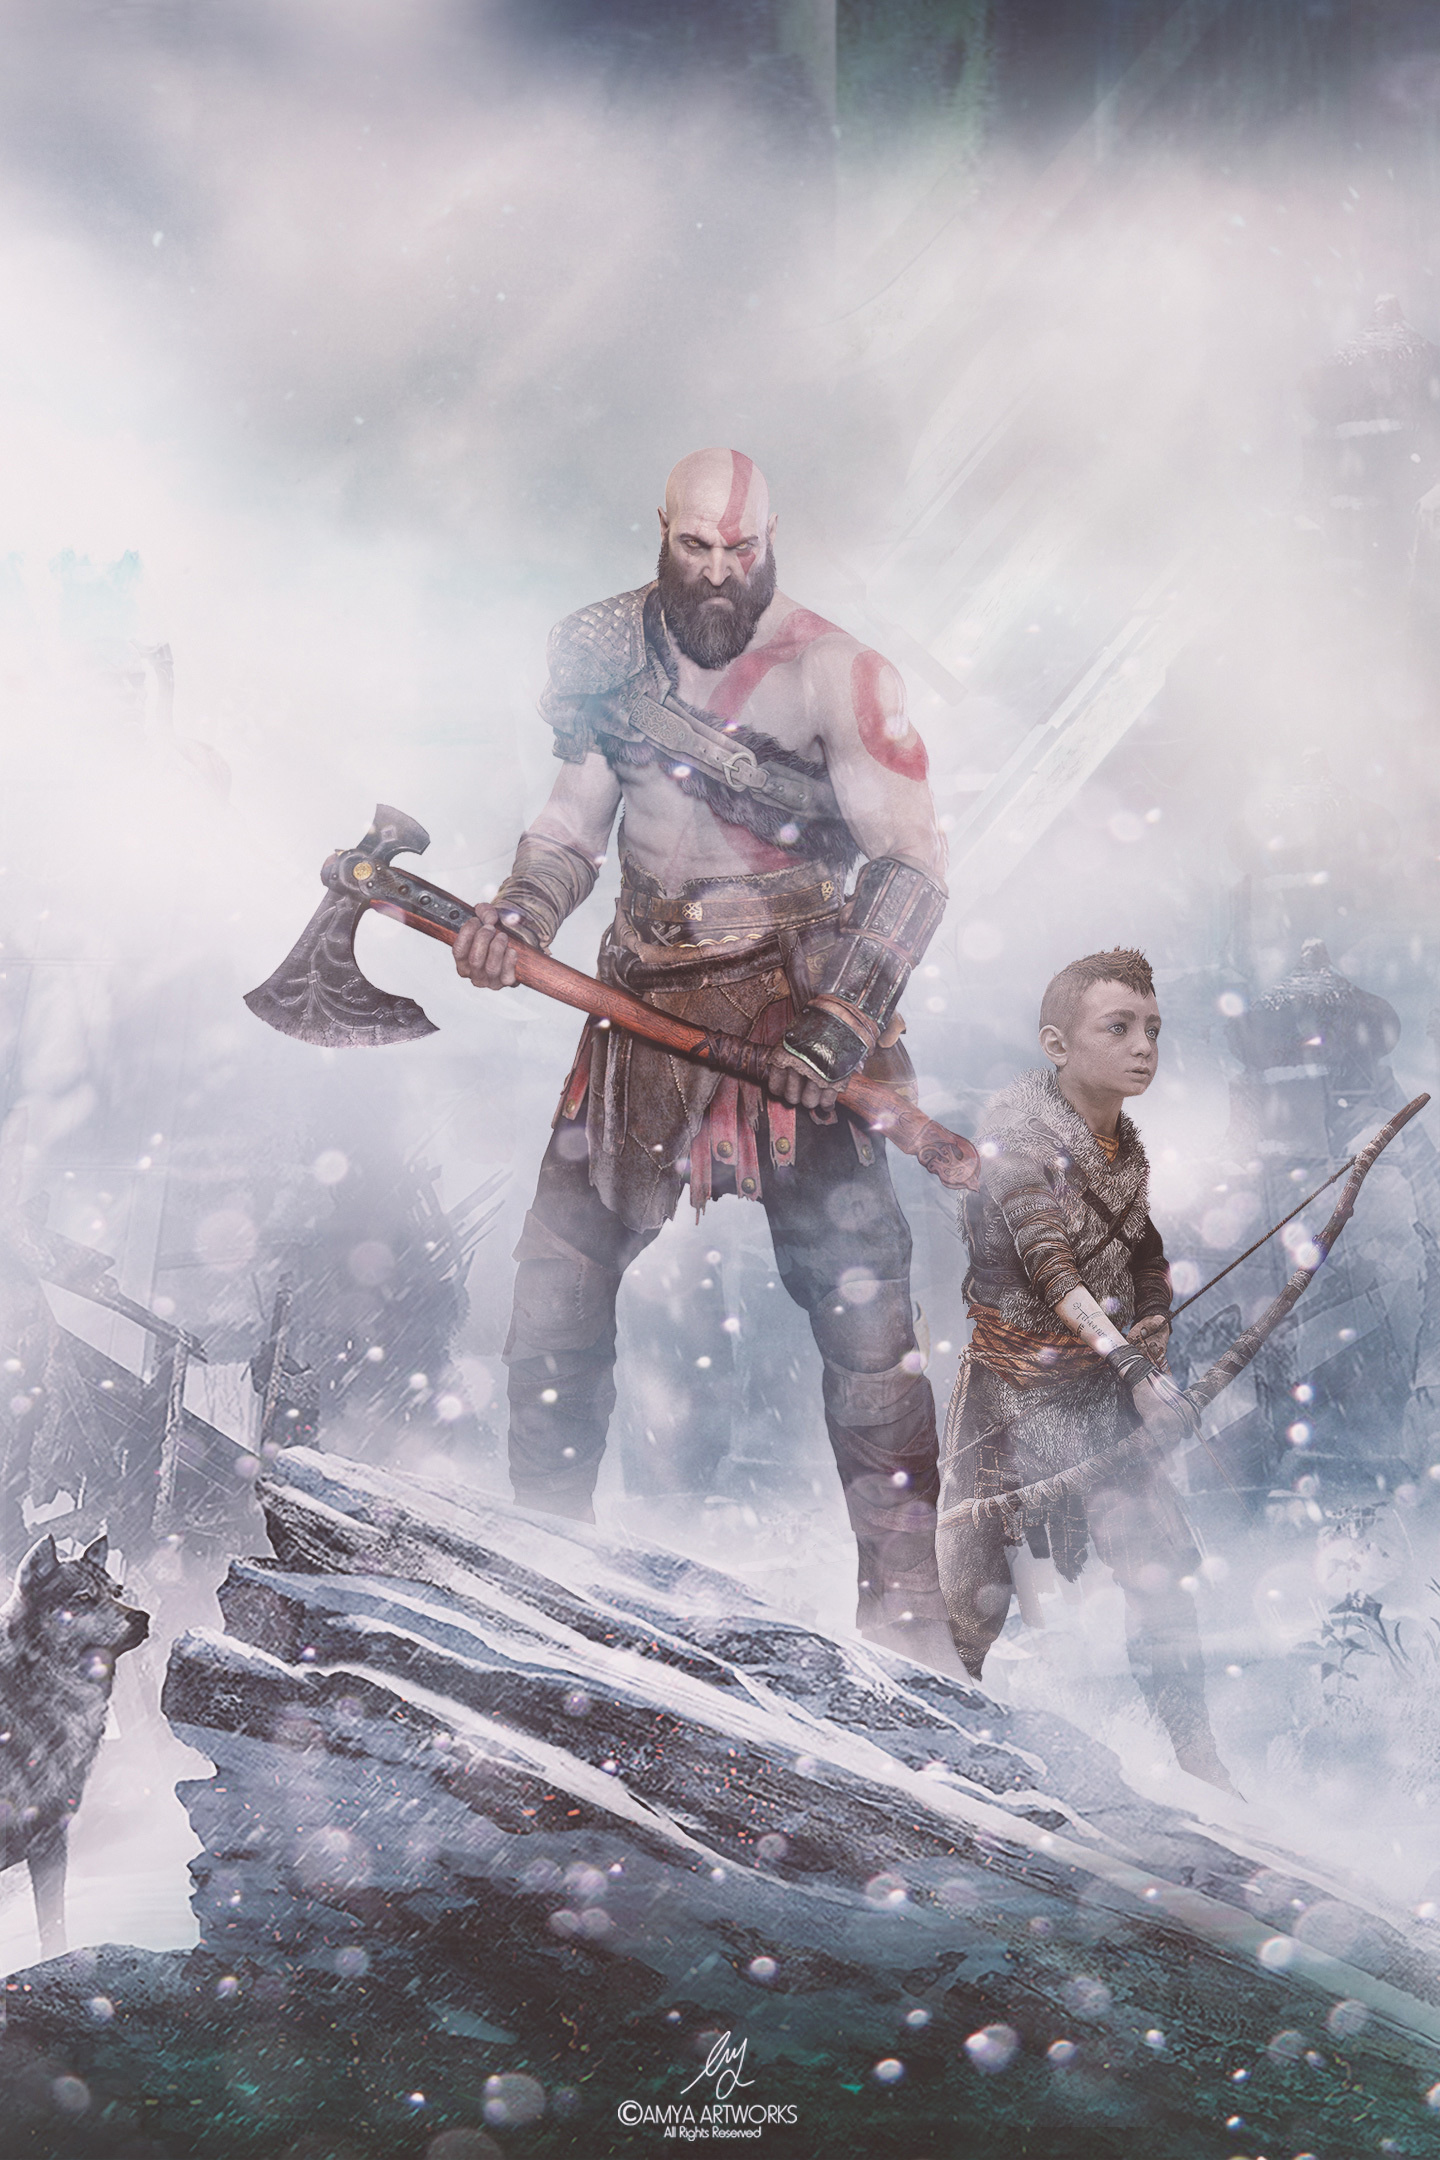 Download 1440x2960 Wallpaper God Of War Video Game Warrior